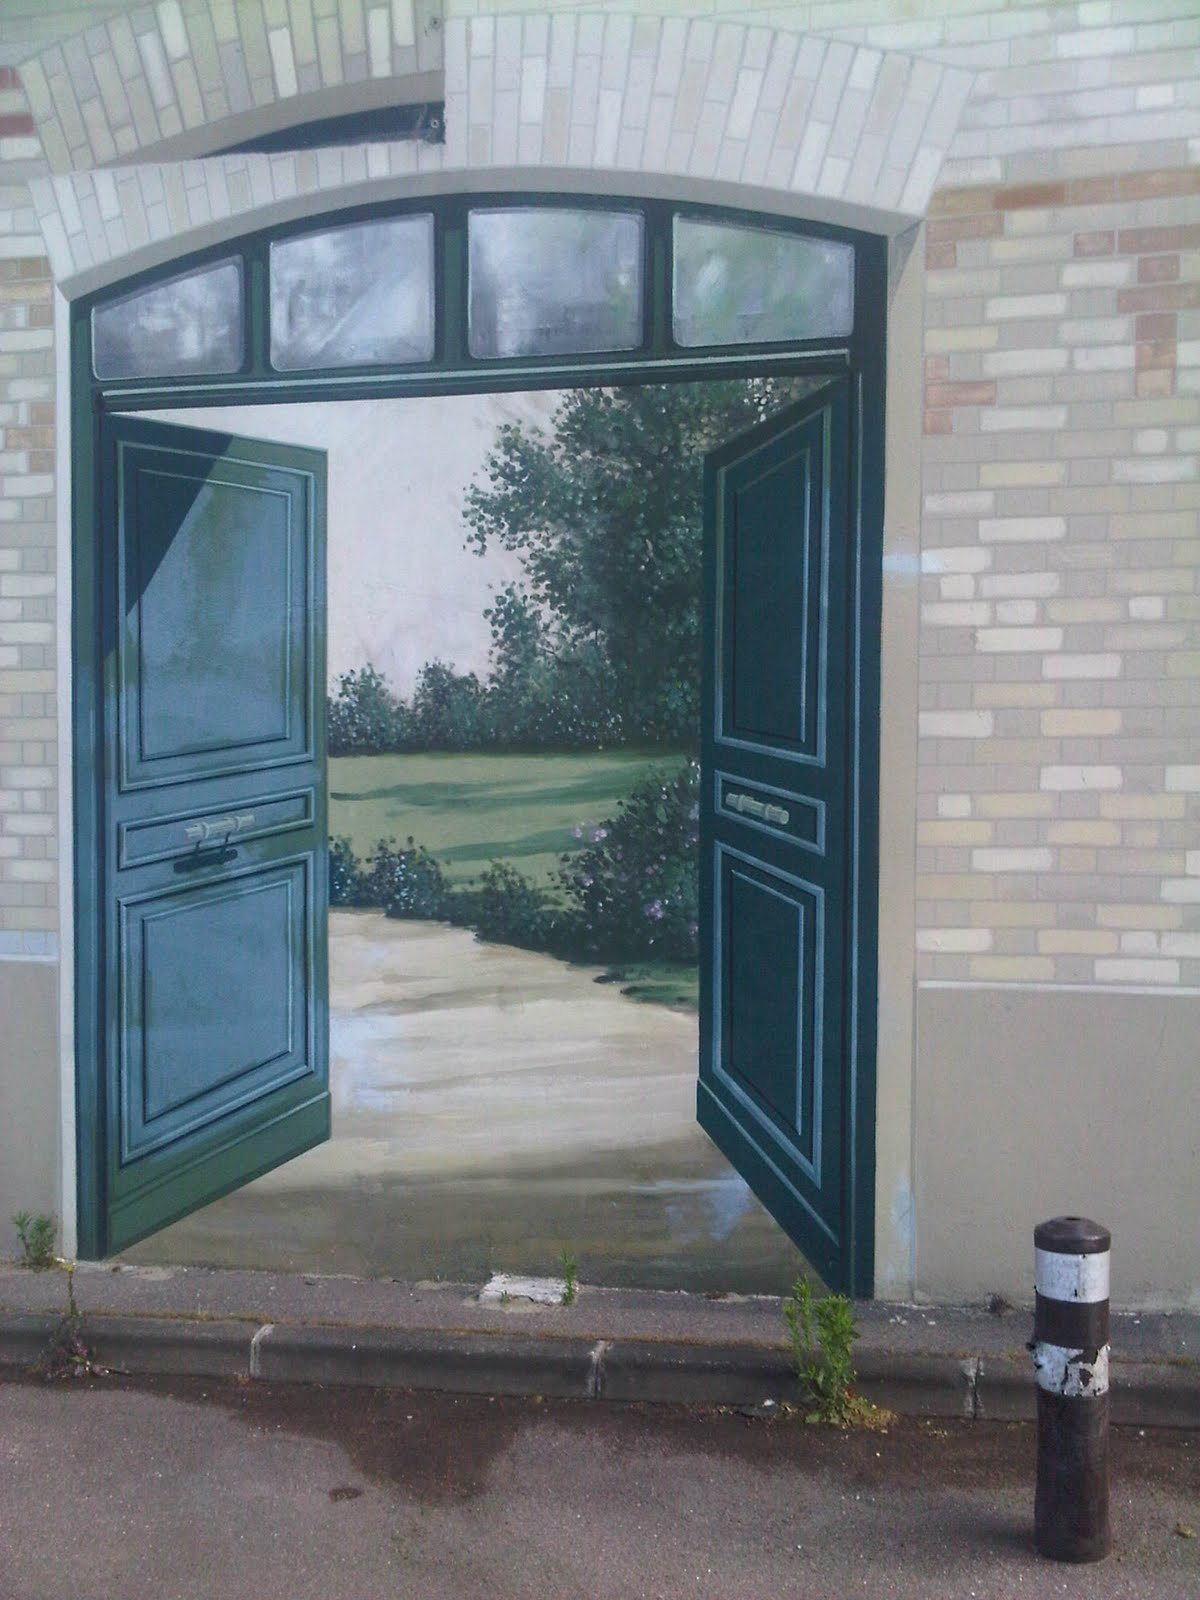 The painted door opens onto an imaginary park as if a hidden world was inside the building. & My French Easel: Trompe lu0027oeil paintings in Neuilly-sur-Seine